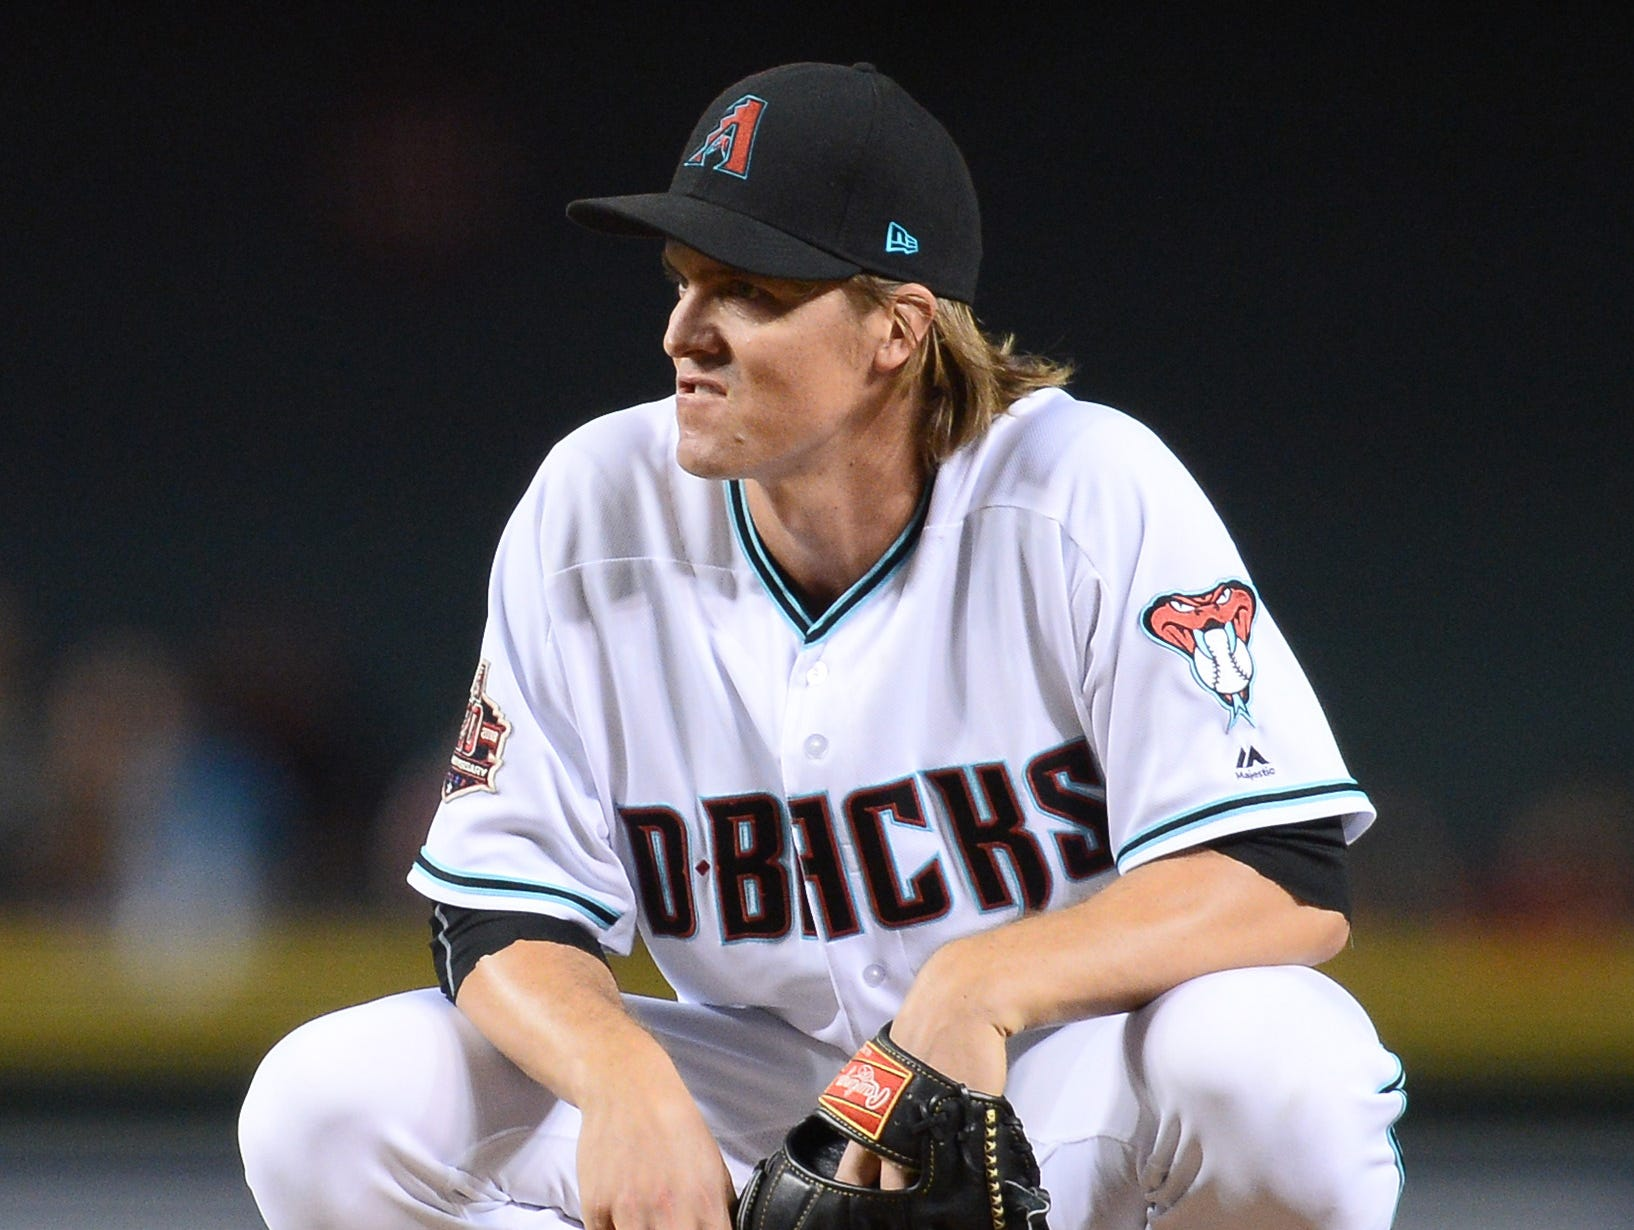 Sep 21, 2018; Phoenix, AZ, USA; Arizona Diamondbacks starting pitcher Zack Greinke (21) reacts against the Colorado Rockies during the fifth inning at Chase Field.